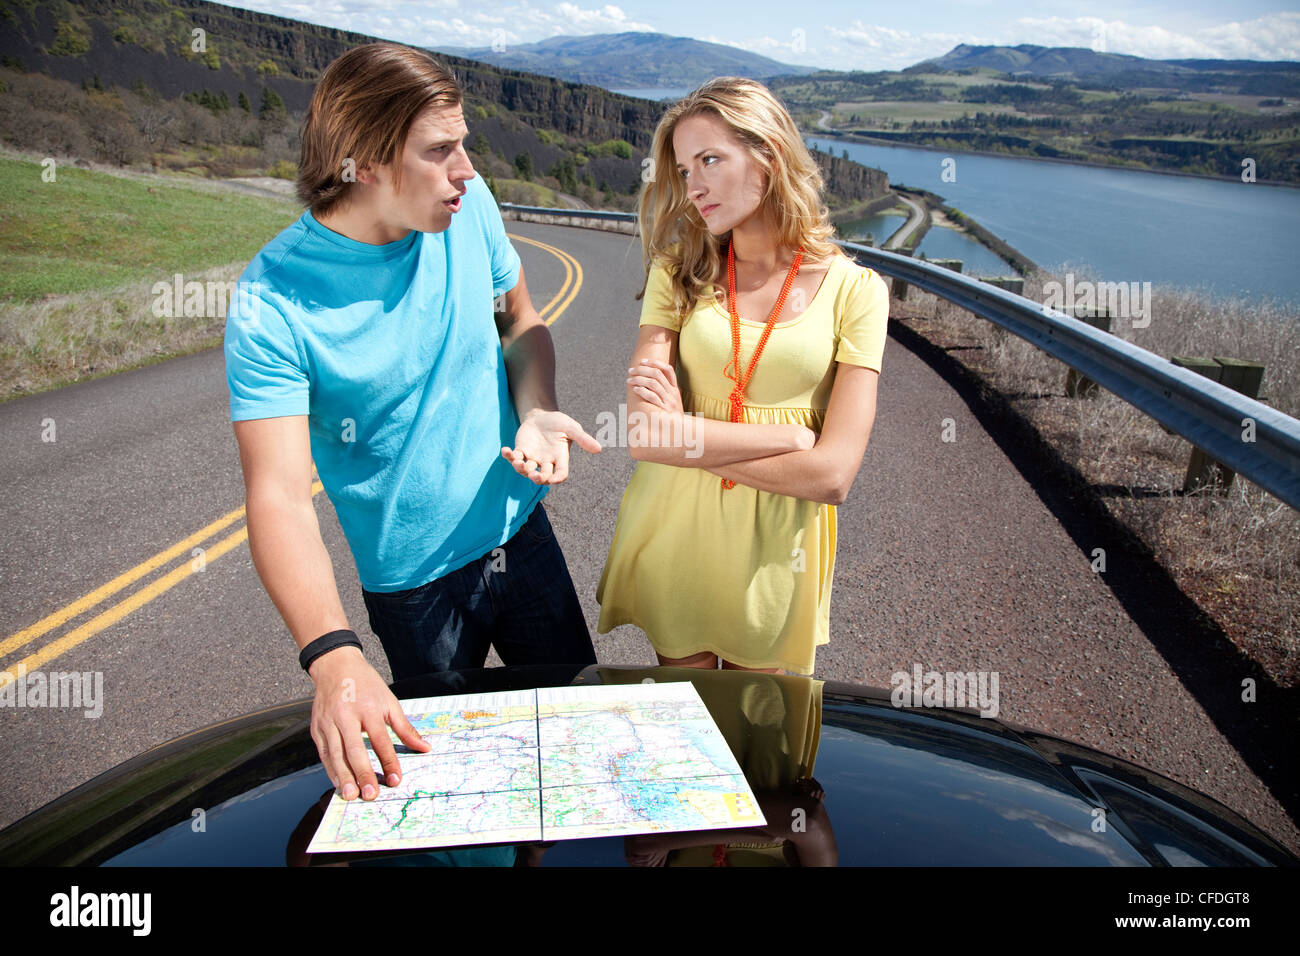 A couple argues while reading a road map on their car hood. - Stock Image